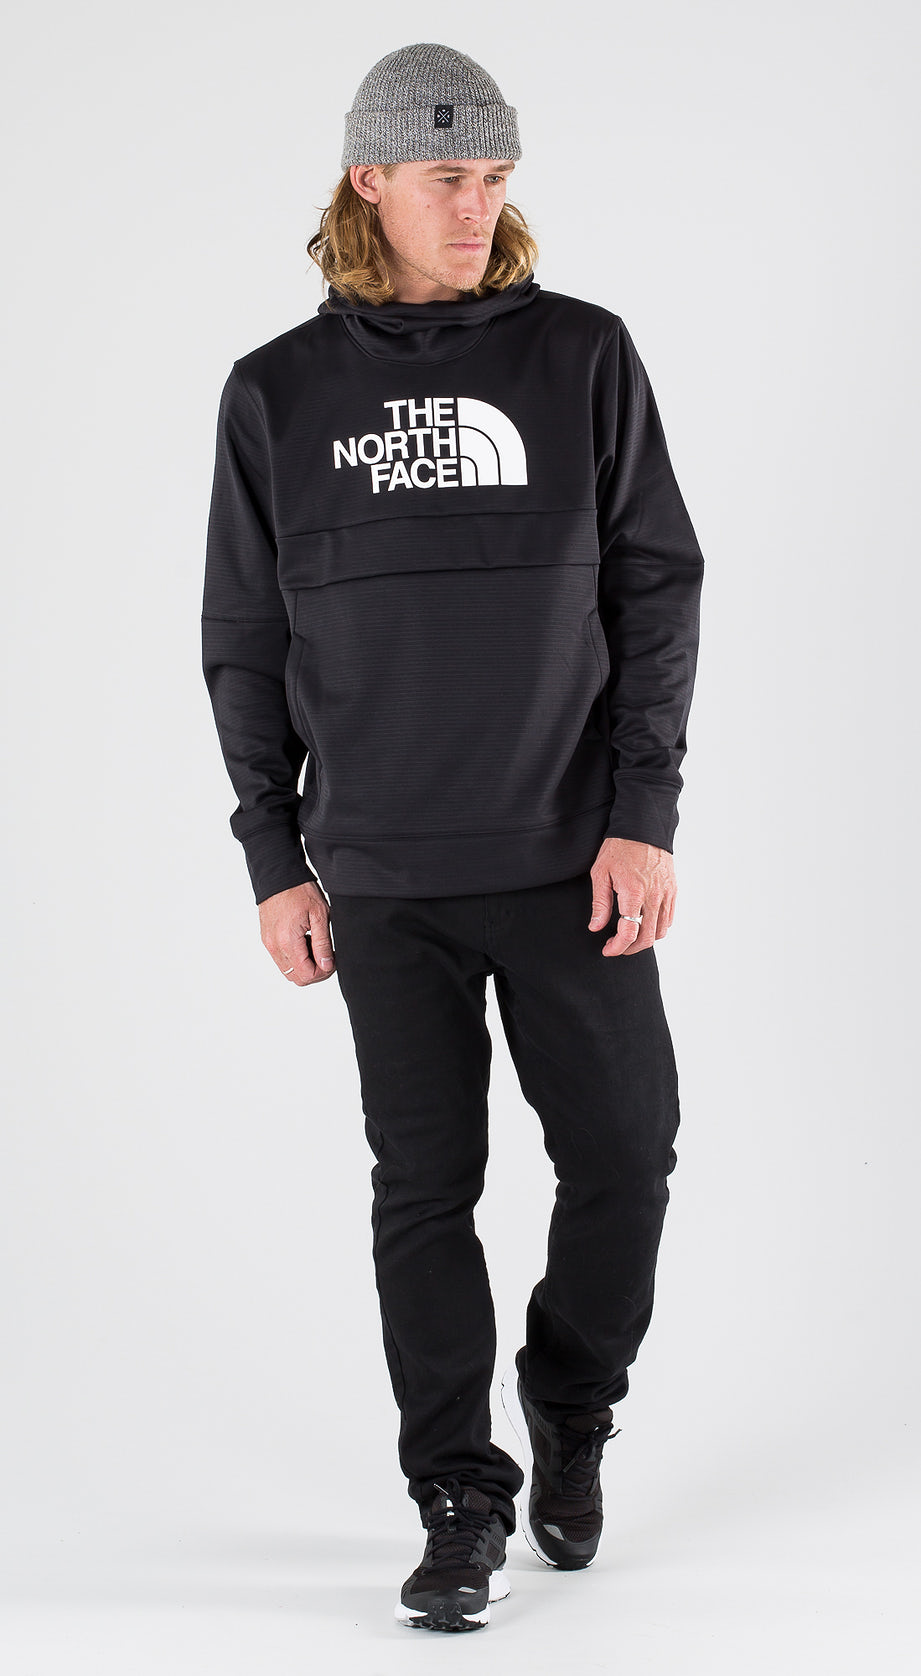 The North Face TNL   Black Outfit Multi